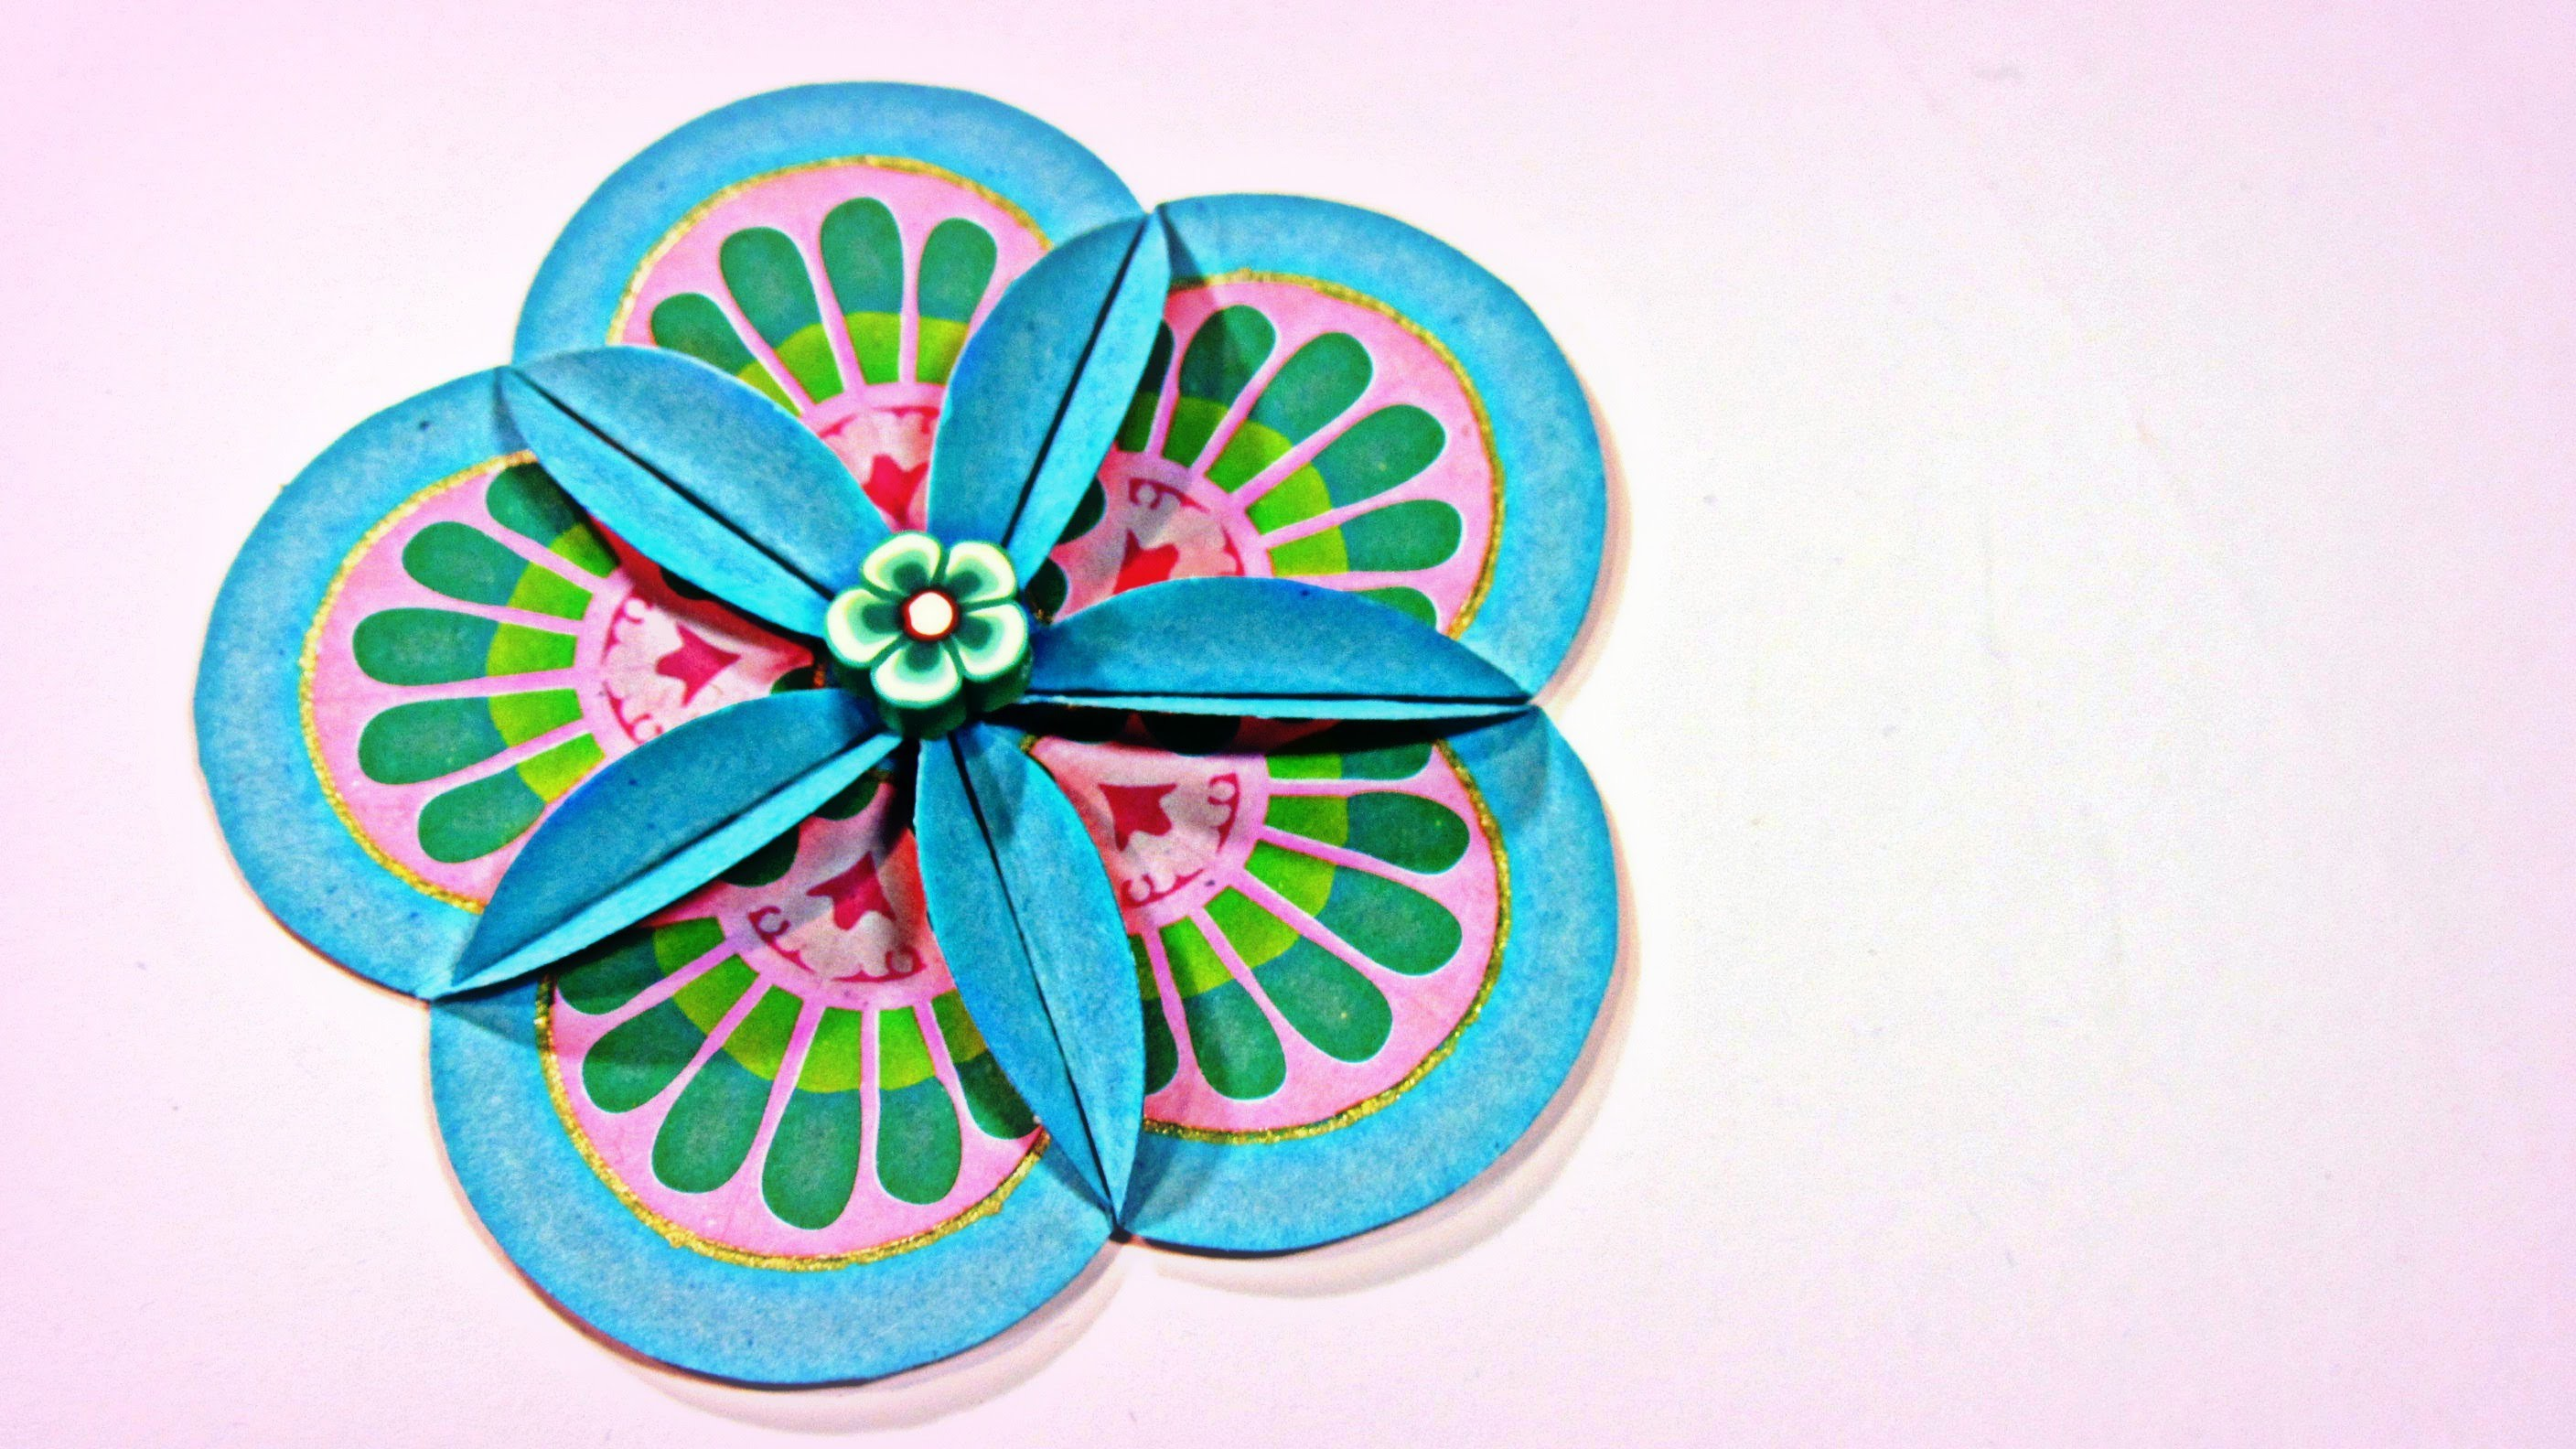 Cómo hacer flores scrapbooking. How to make scrapbooking flowers.